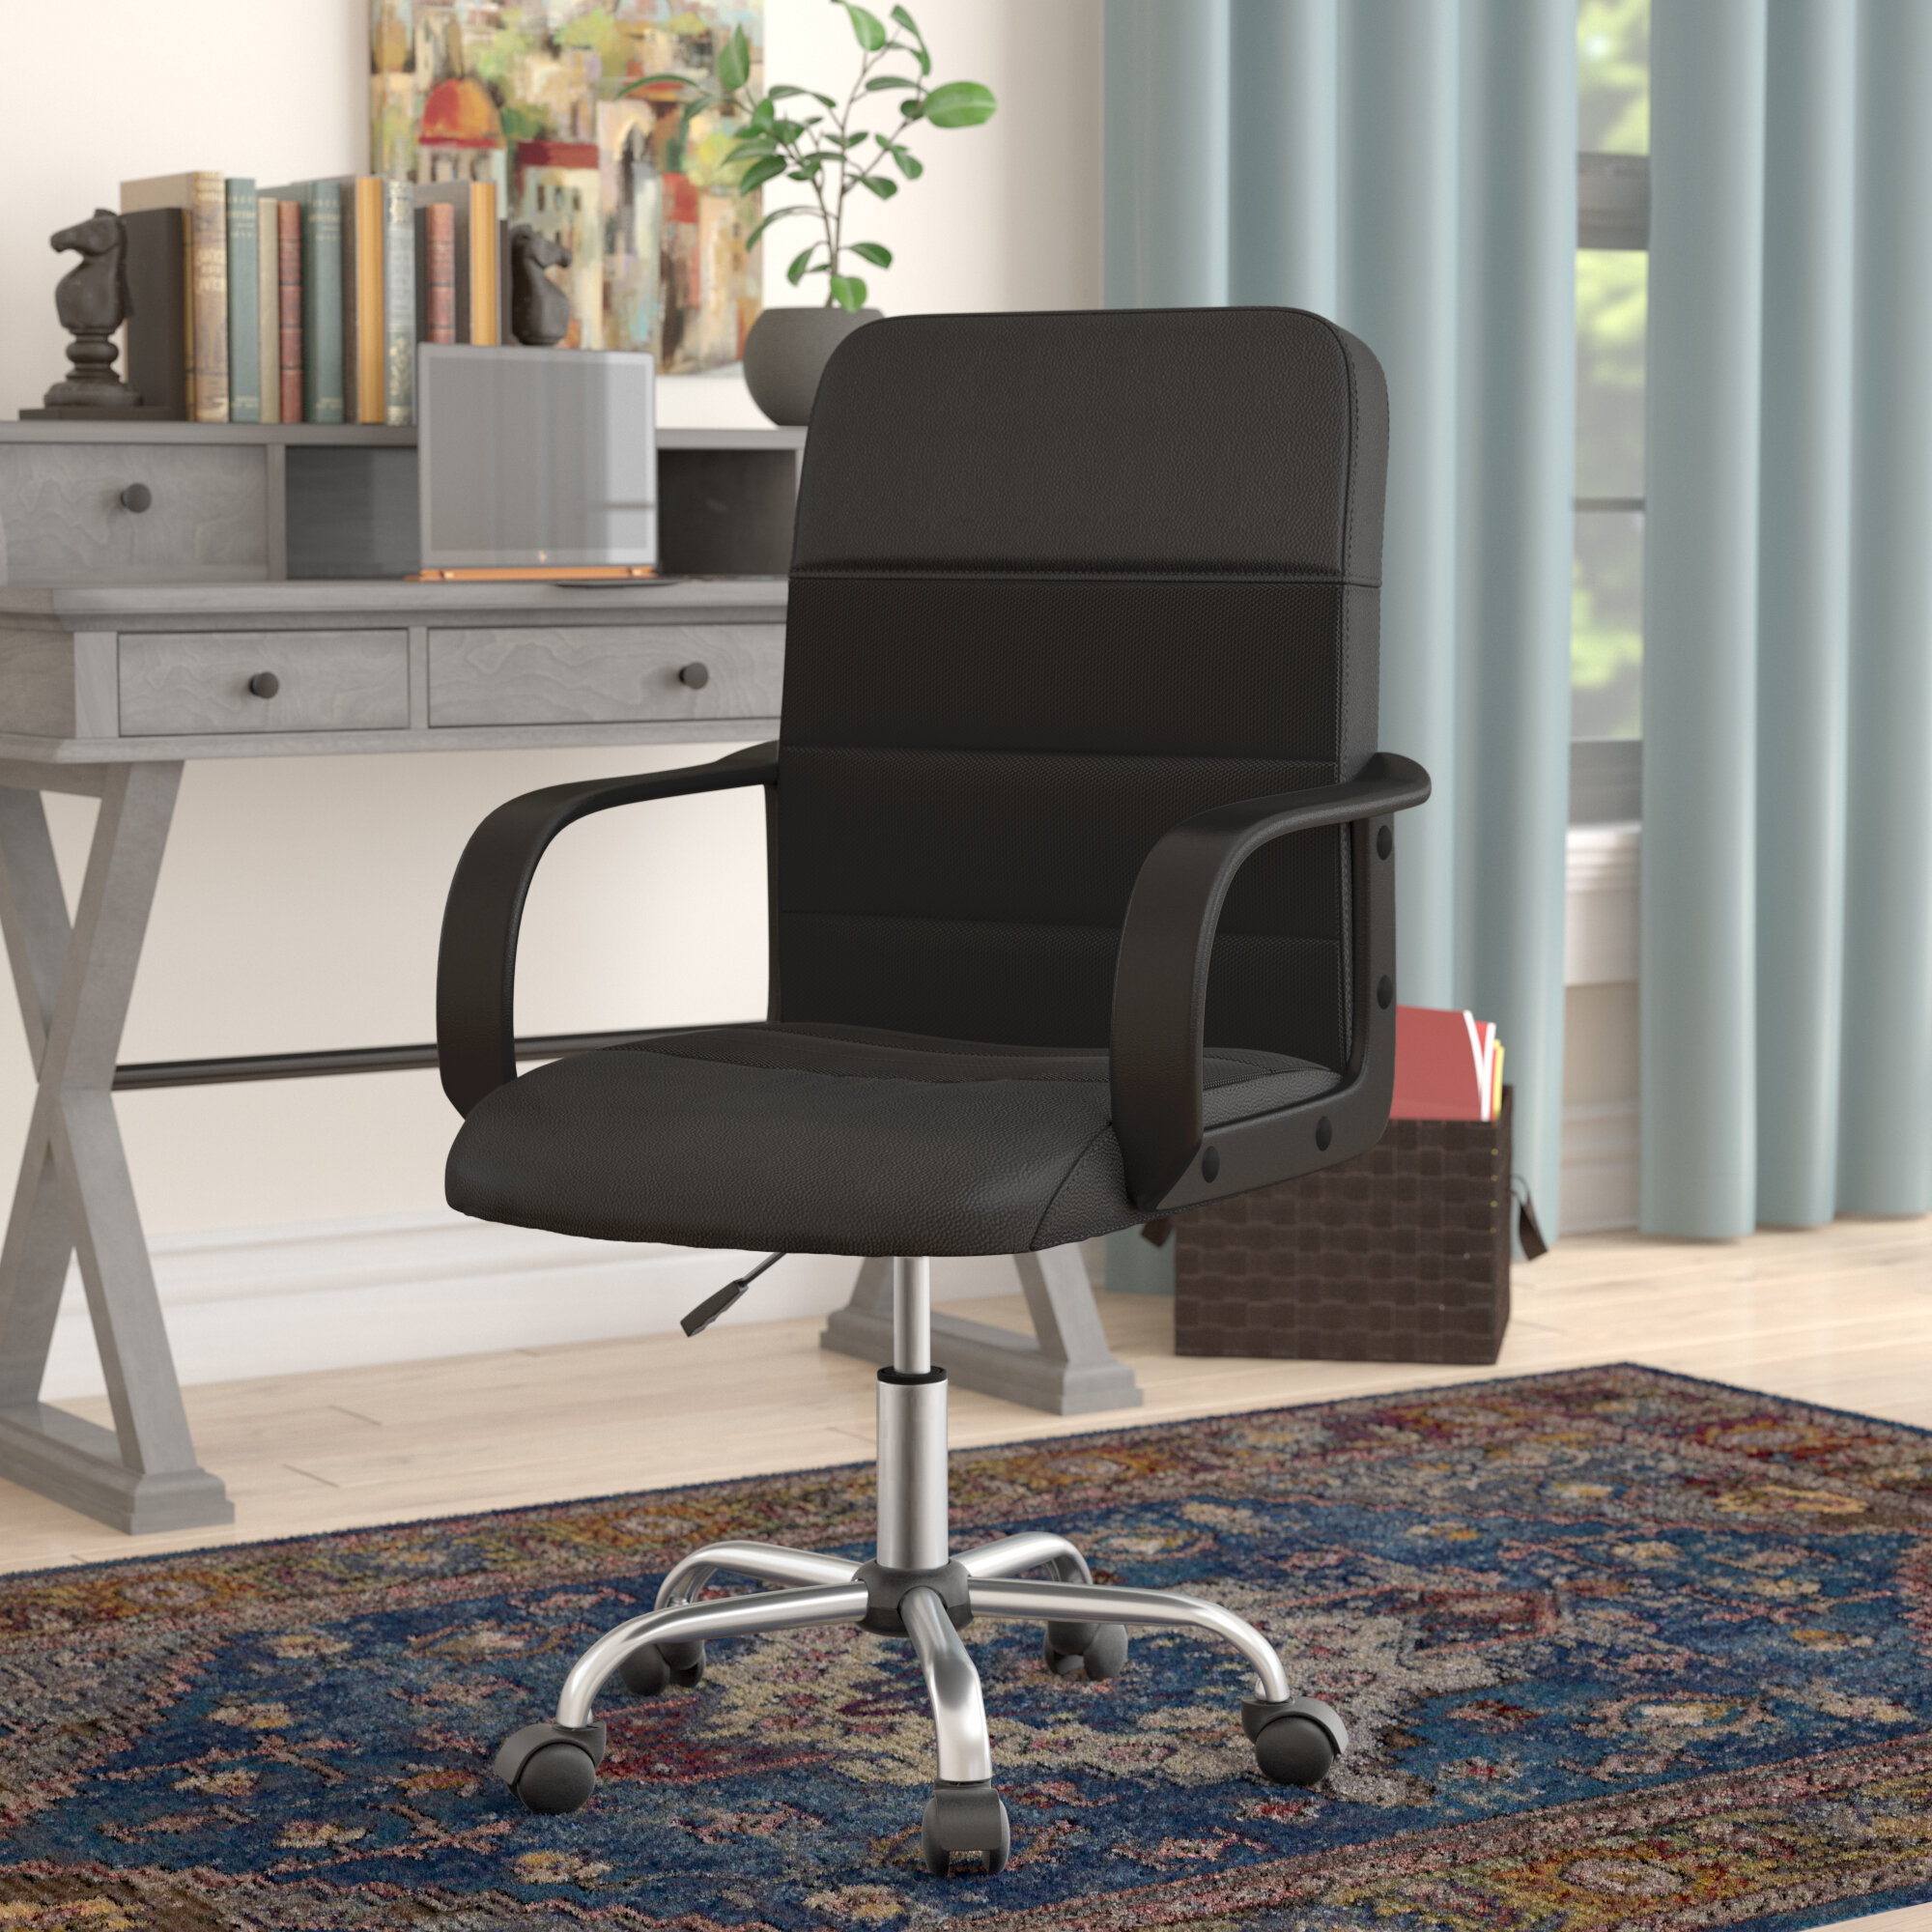 Cool Home Office Chairs Office Furniture Office Depot Charlton Home Bischof Mesh Office Chair Reviews Wayfair